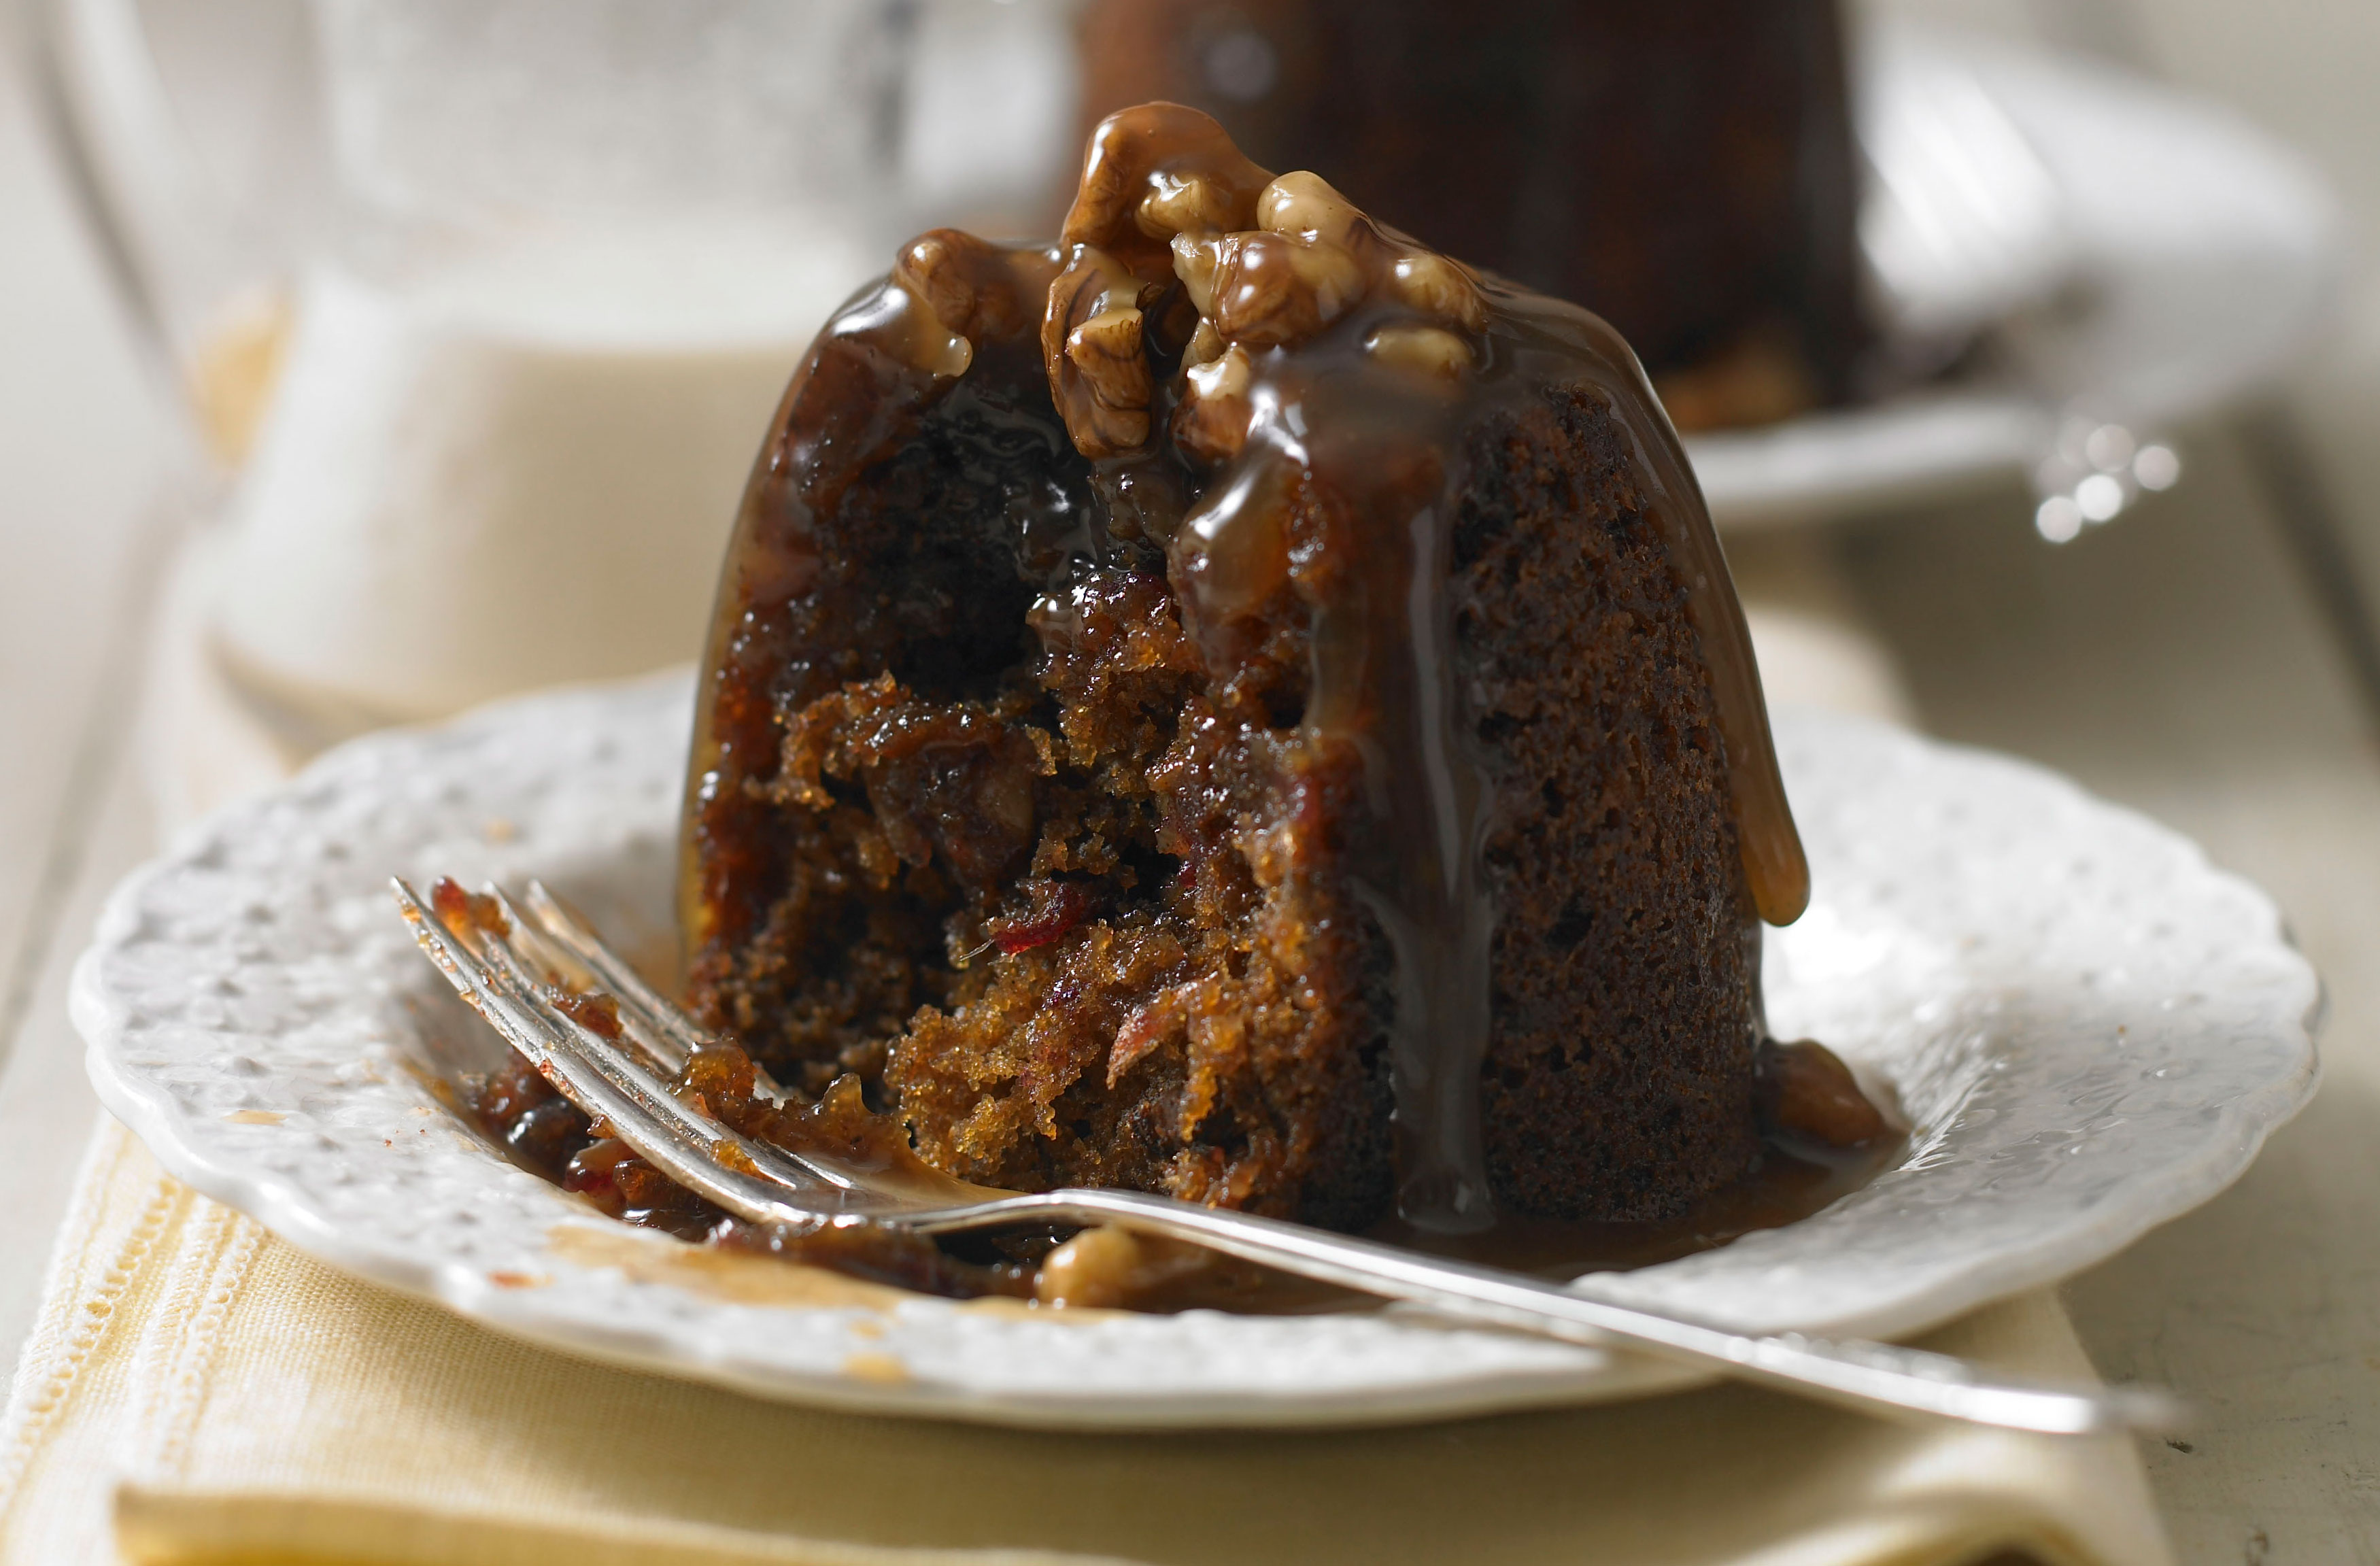 Phil Vickery S Sticky Toffee Pudding Dessert Recipes Goodtoknow